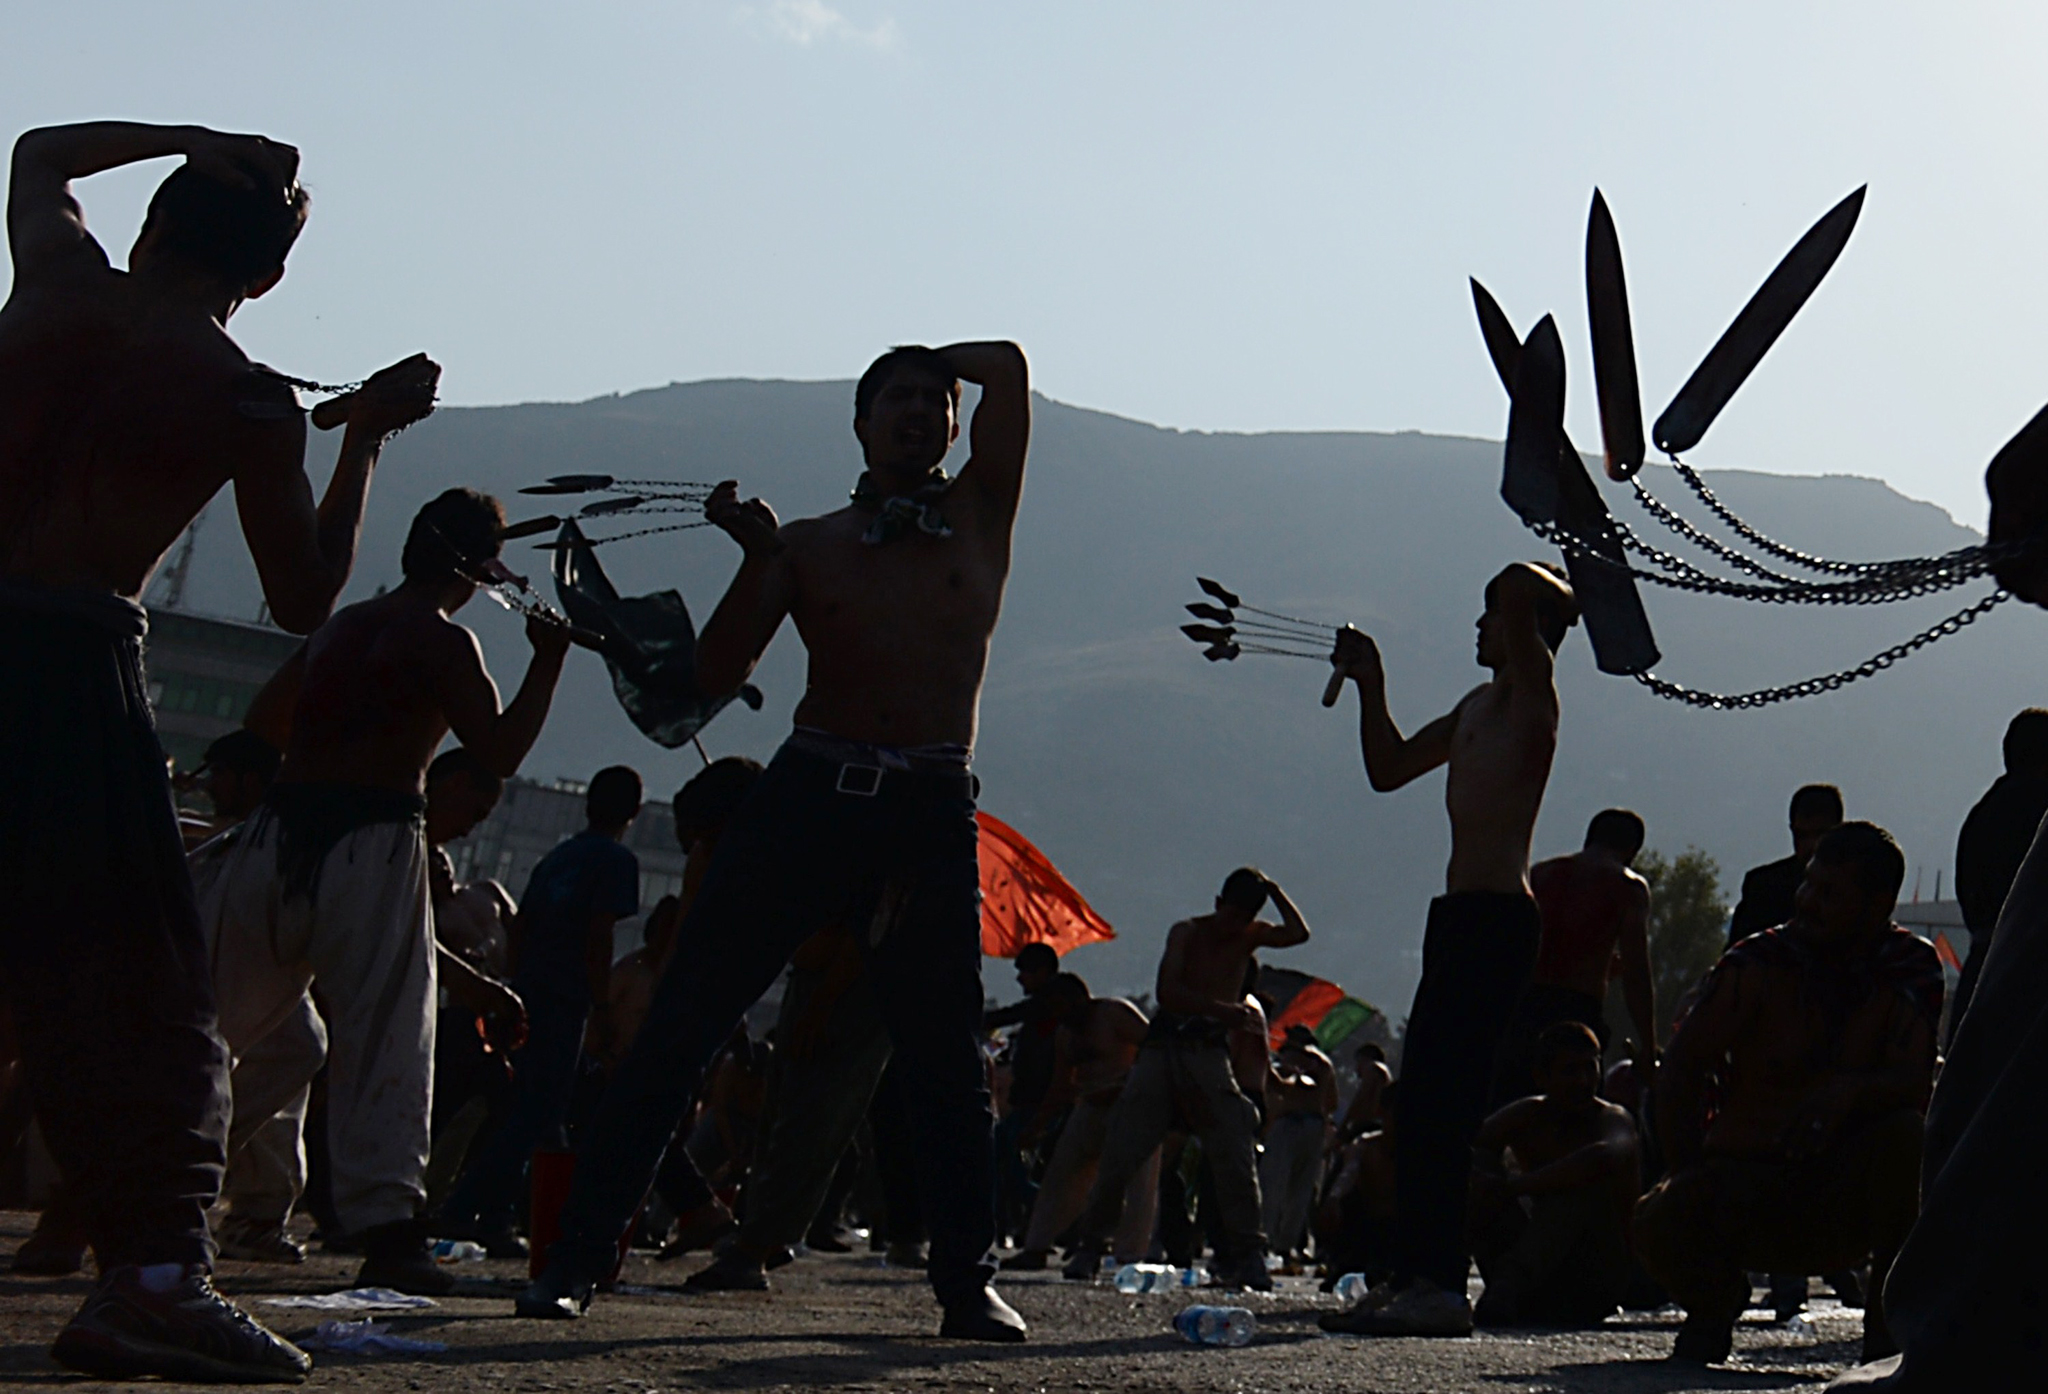 Afghan Shiites devotees beat themselves with chains and blades during commemorations ahead of the Day of Ashura in Kabul on October 30, 2014. Ashura mourns the death of Imam Hussein, a grandson of the Prophet Mohammed, who was killed by armies of the Yazid near Karbala in 680 AD